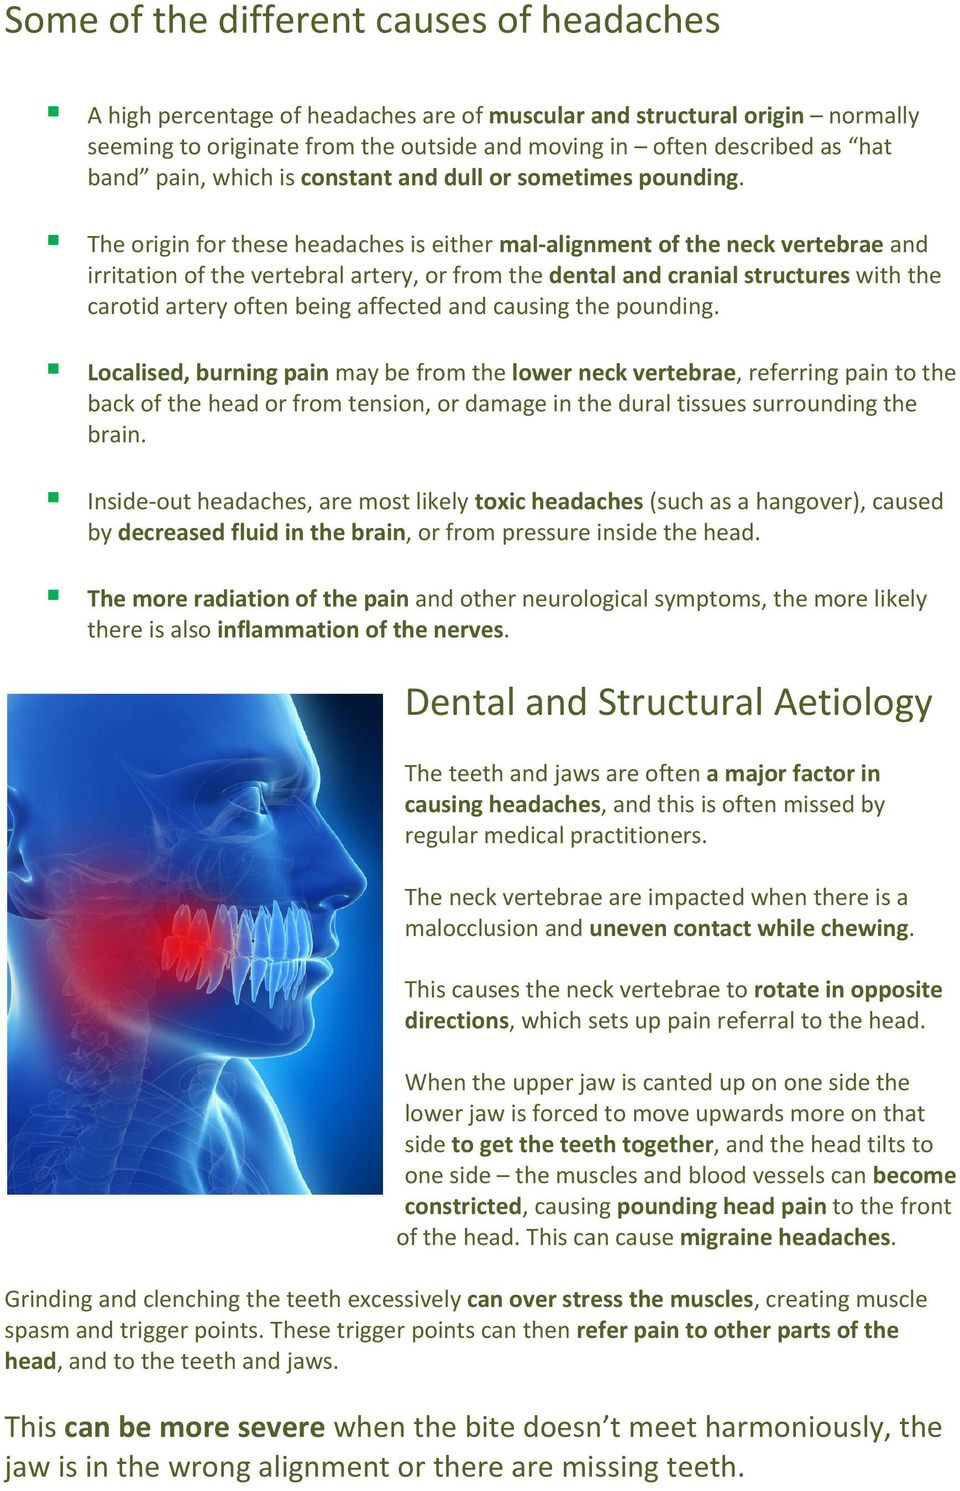 The origin for these headaches is either mal-alignment of the neck vertebrae and irritation of the vertebral artery, or from the dental and cranial structures with the carotid artery often being